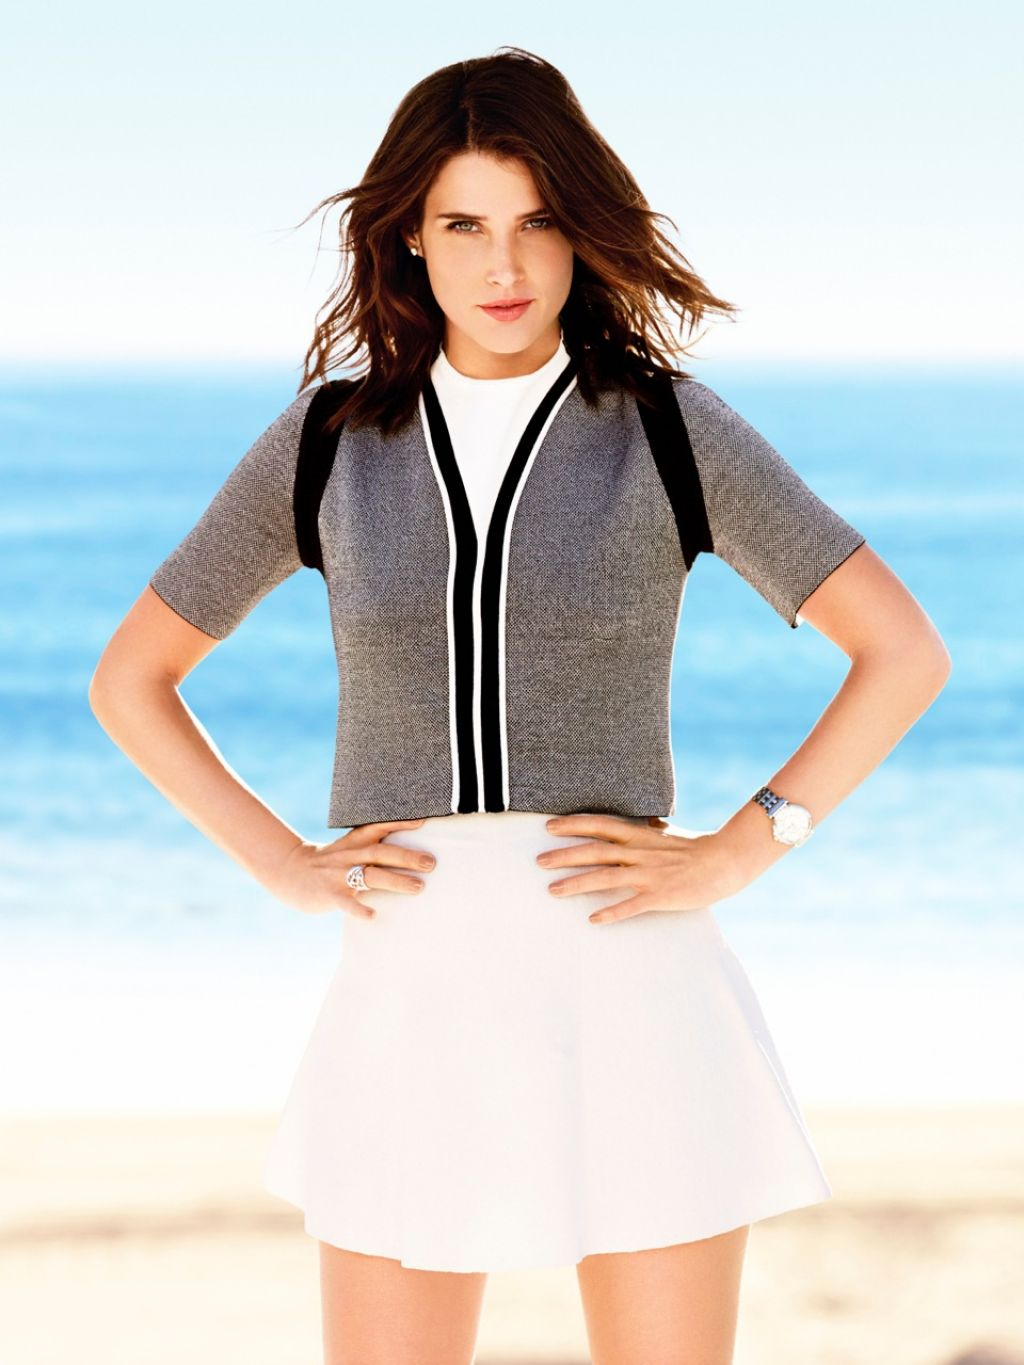 Cobie Smulders - Photoshoot For Self Magazine April 2014 -9447